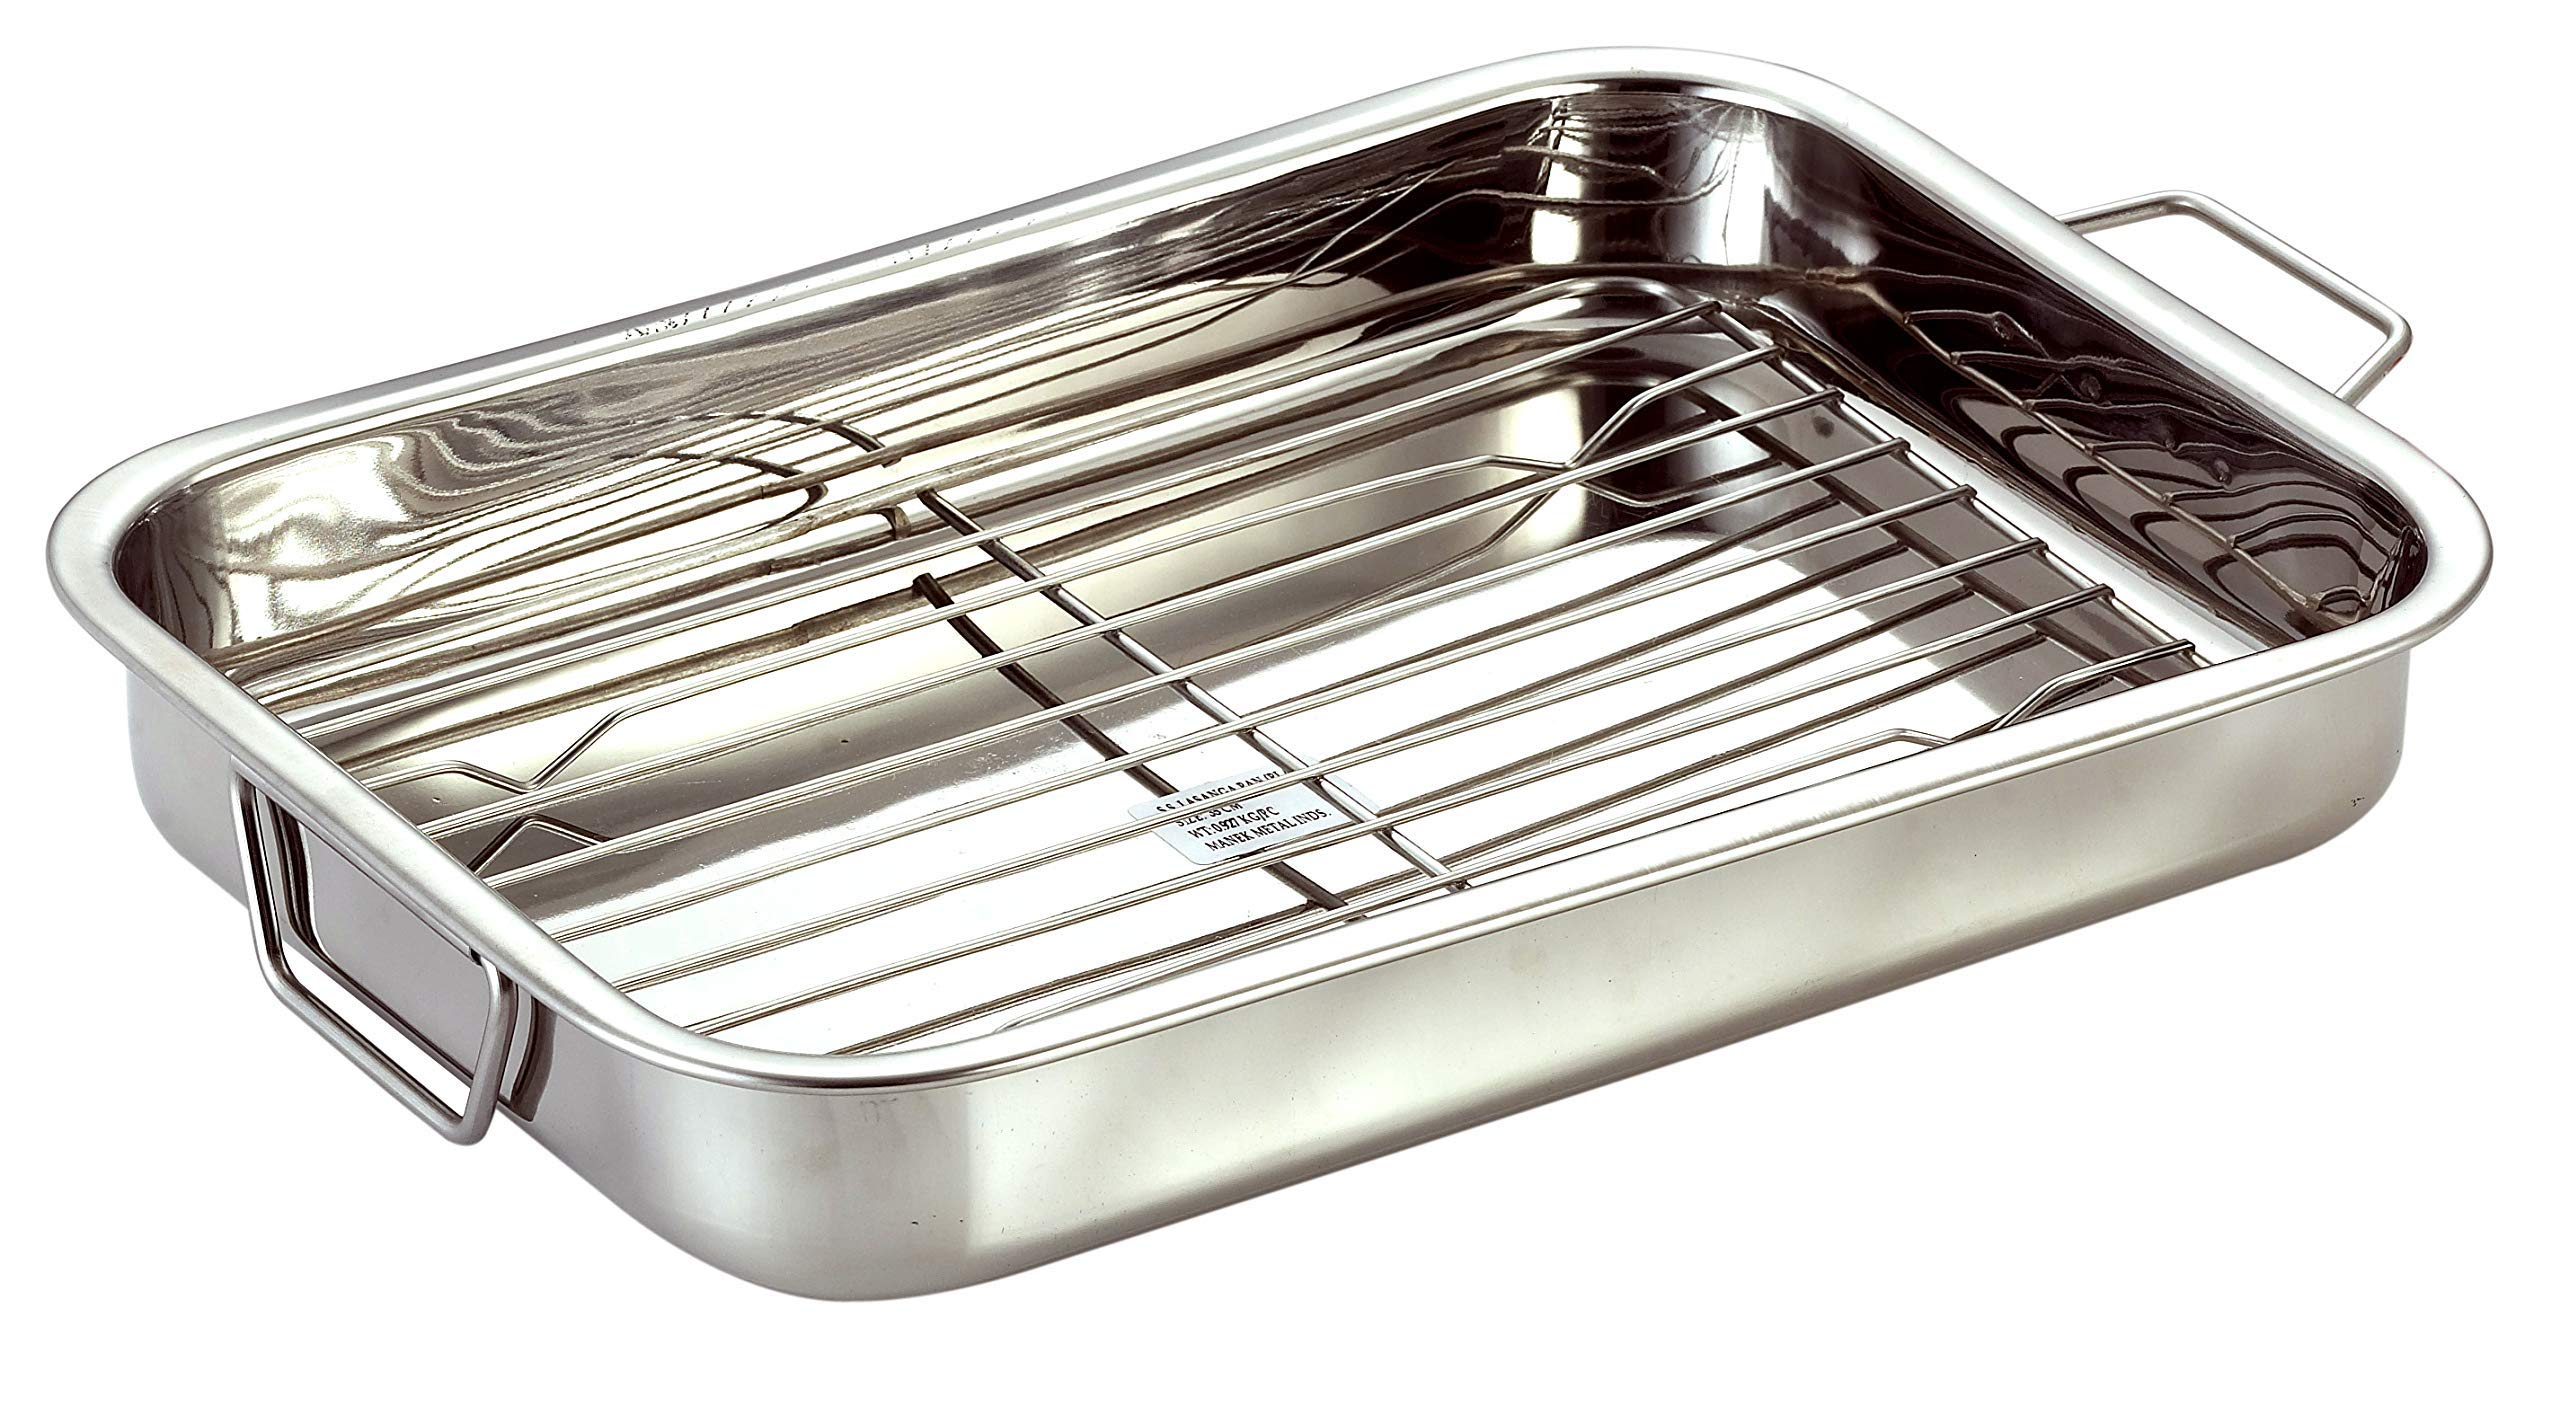 Stainless Steel Roast Pan with Grill Rack & Folding Handles // CHEF DIRECT // Rectangular Lasagna Pan for Baking, Grilling, Roasting // OTG Oven Safe (With Grill Roasting Rack (35cm X 24cm))